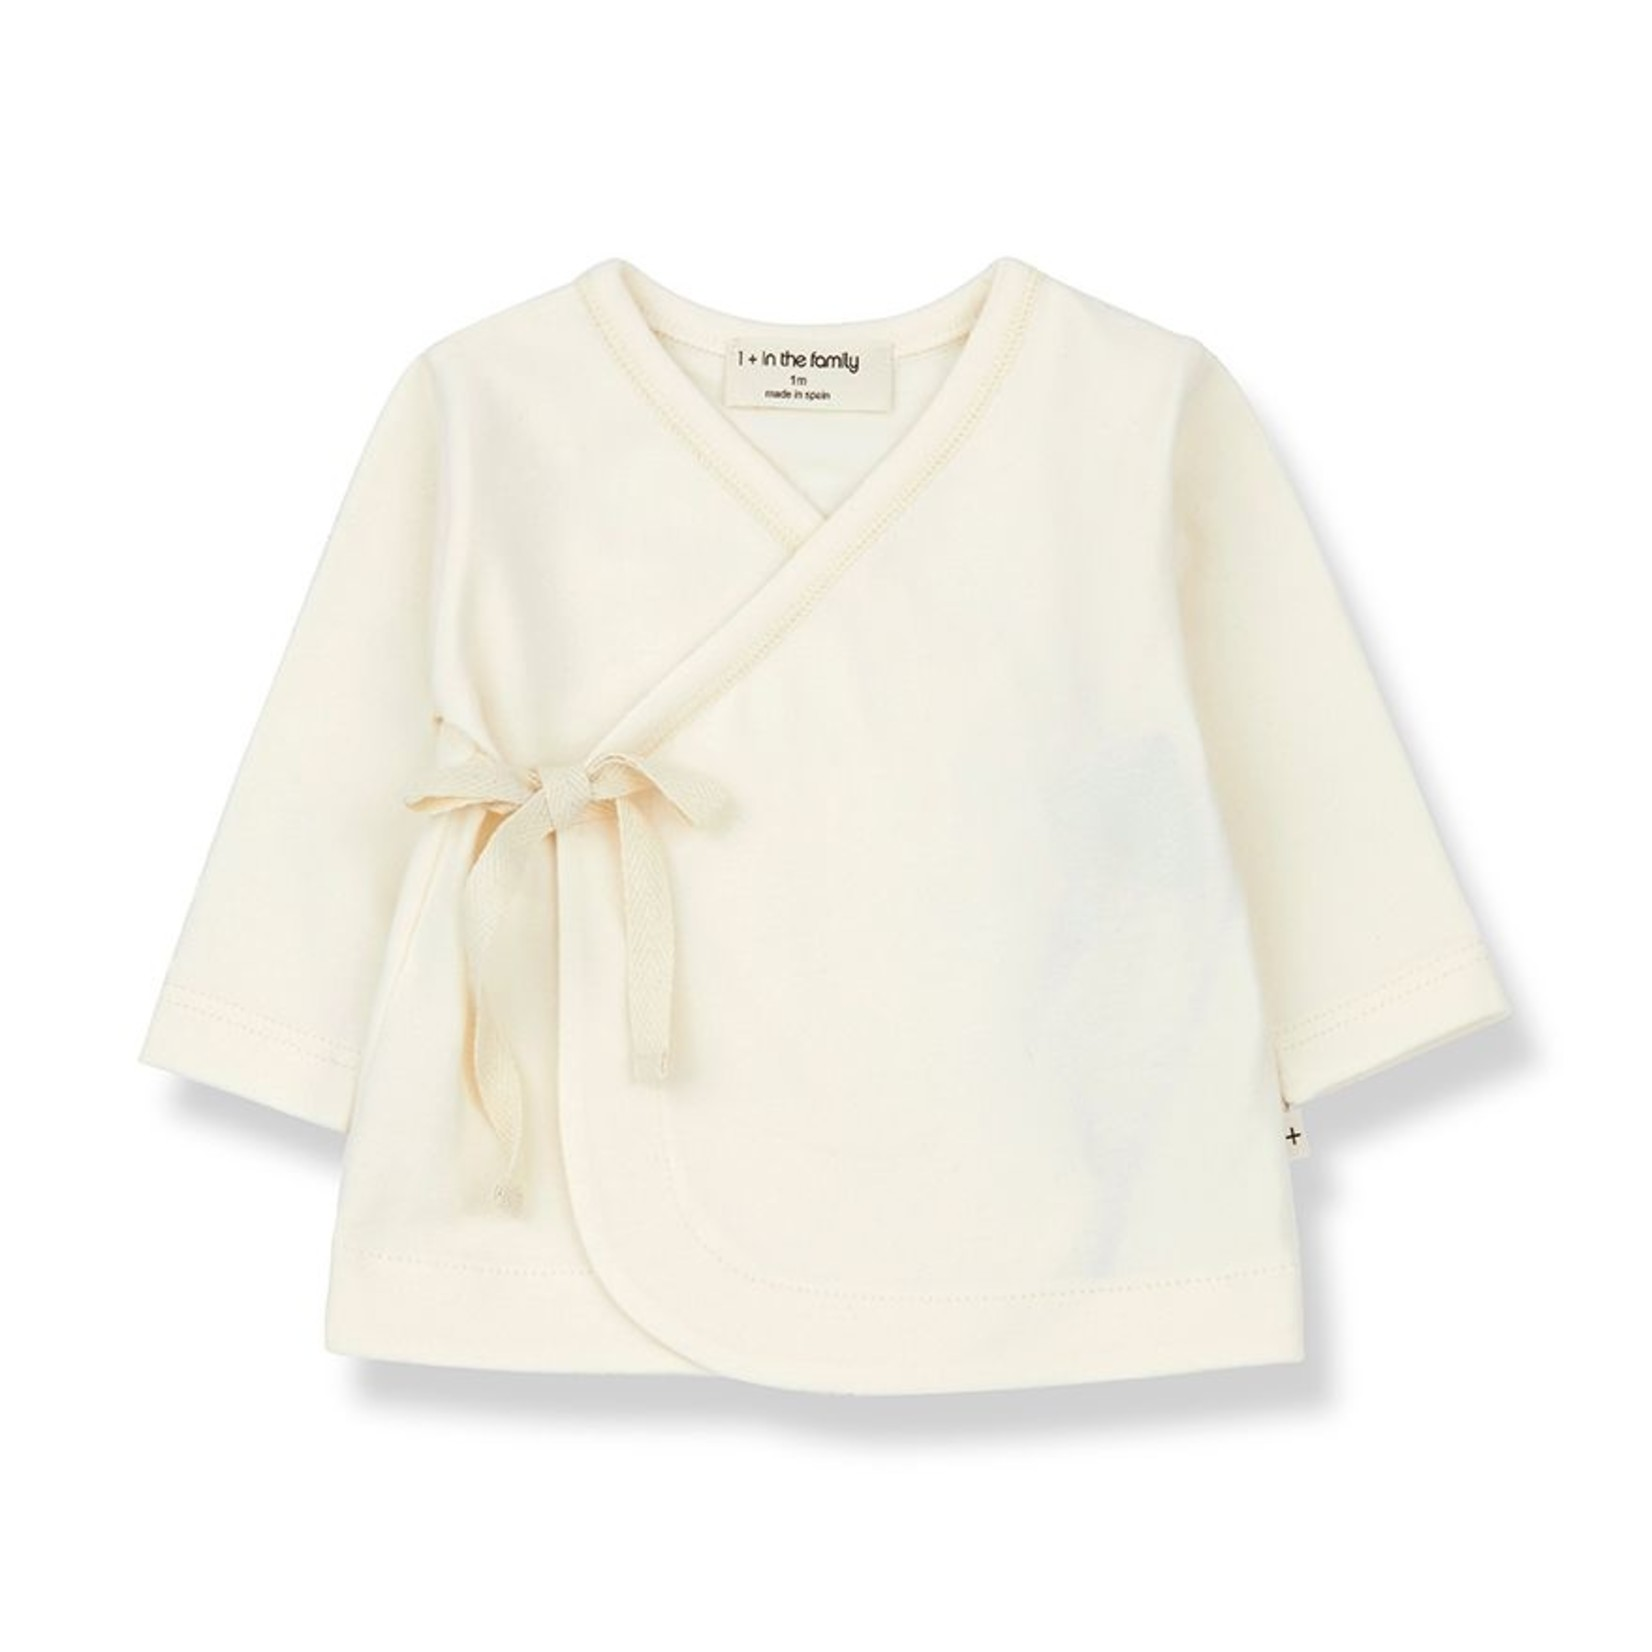 1+IN THE FAMILY 1 + IN THE FAMILY BABETTE newborn shirt